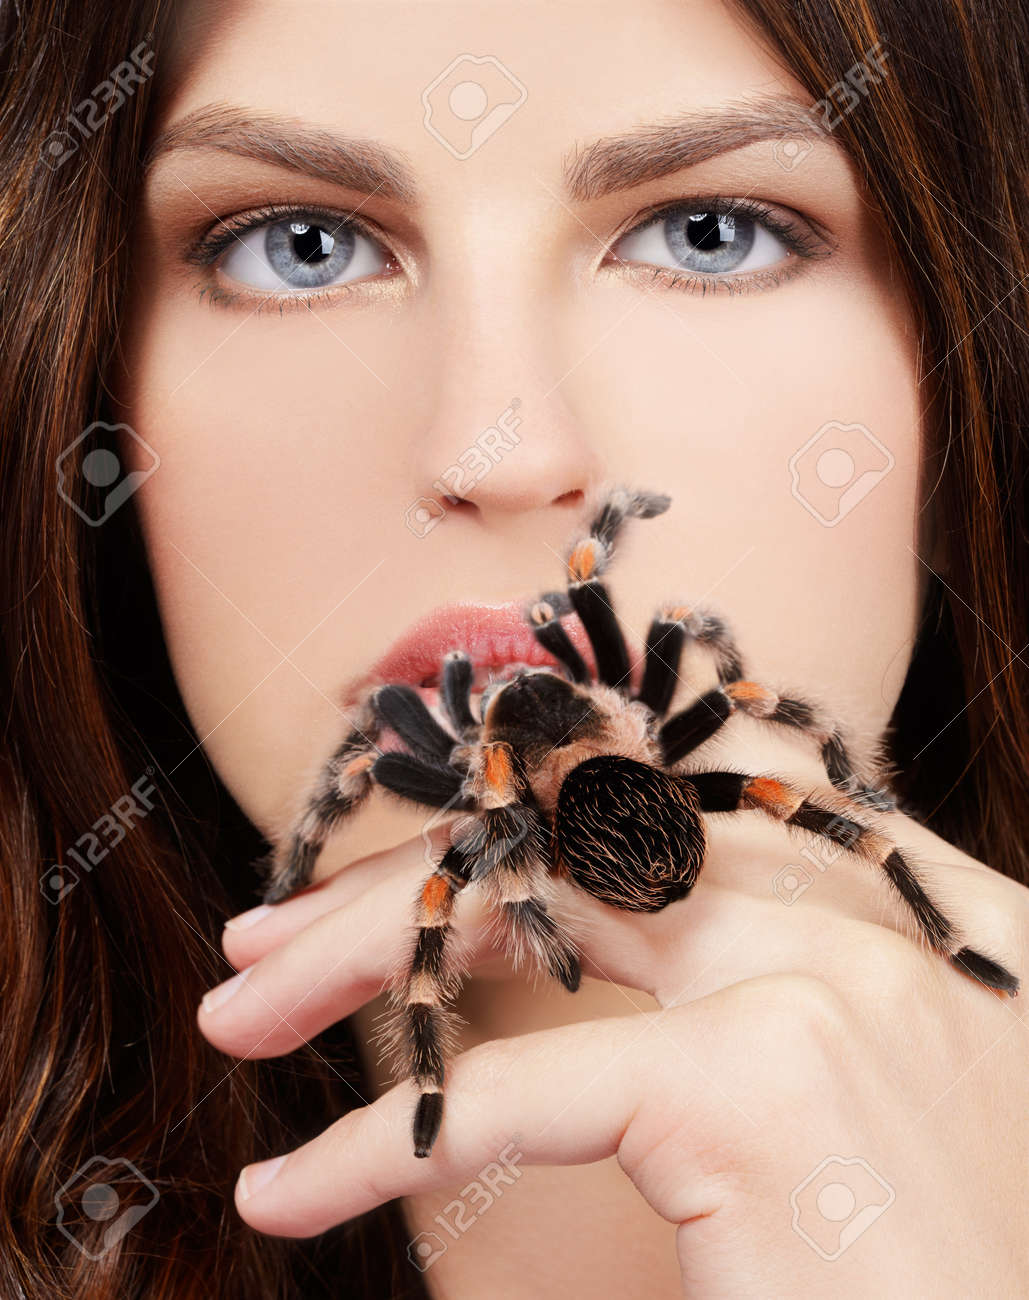 close-up brachypelma smithi spider sitting on girl's hand and stretching out to her mouth Stock Photo - 8306767